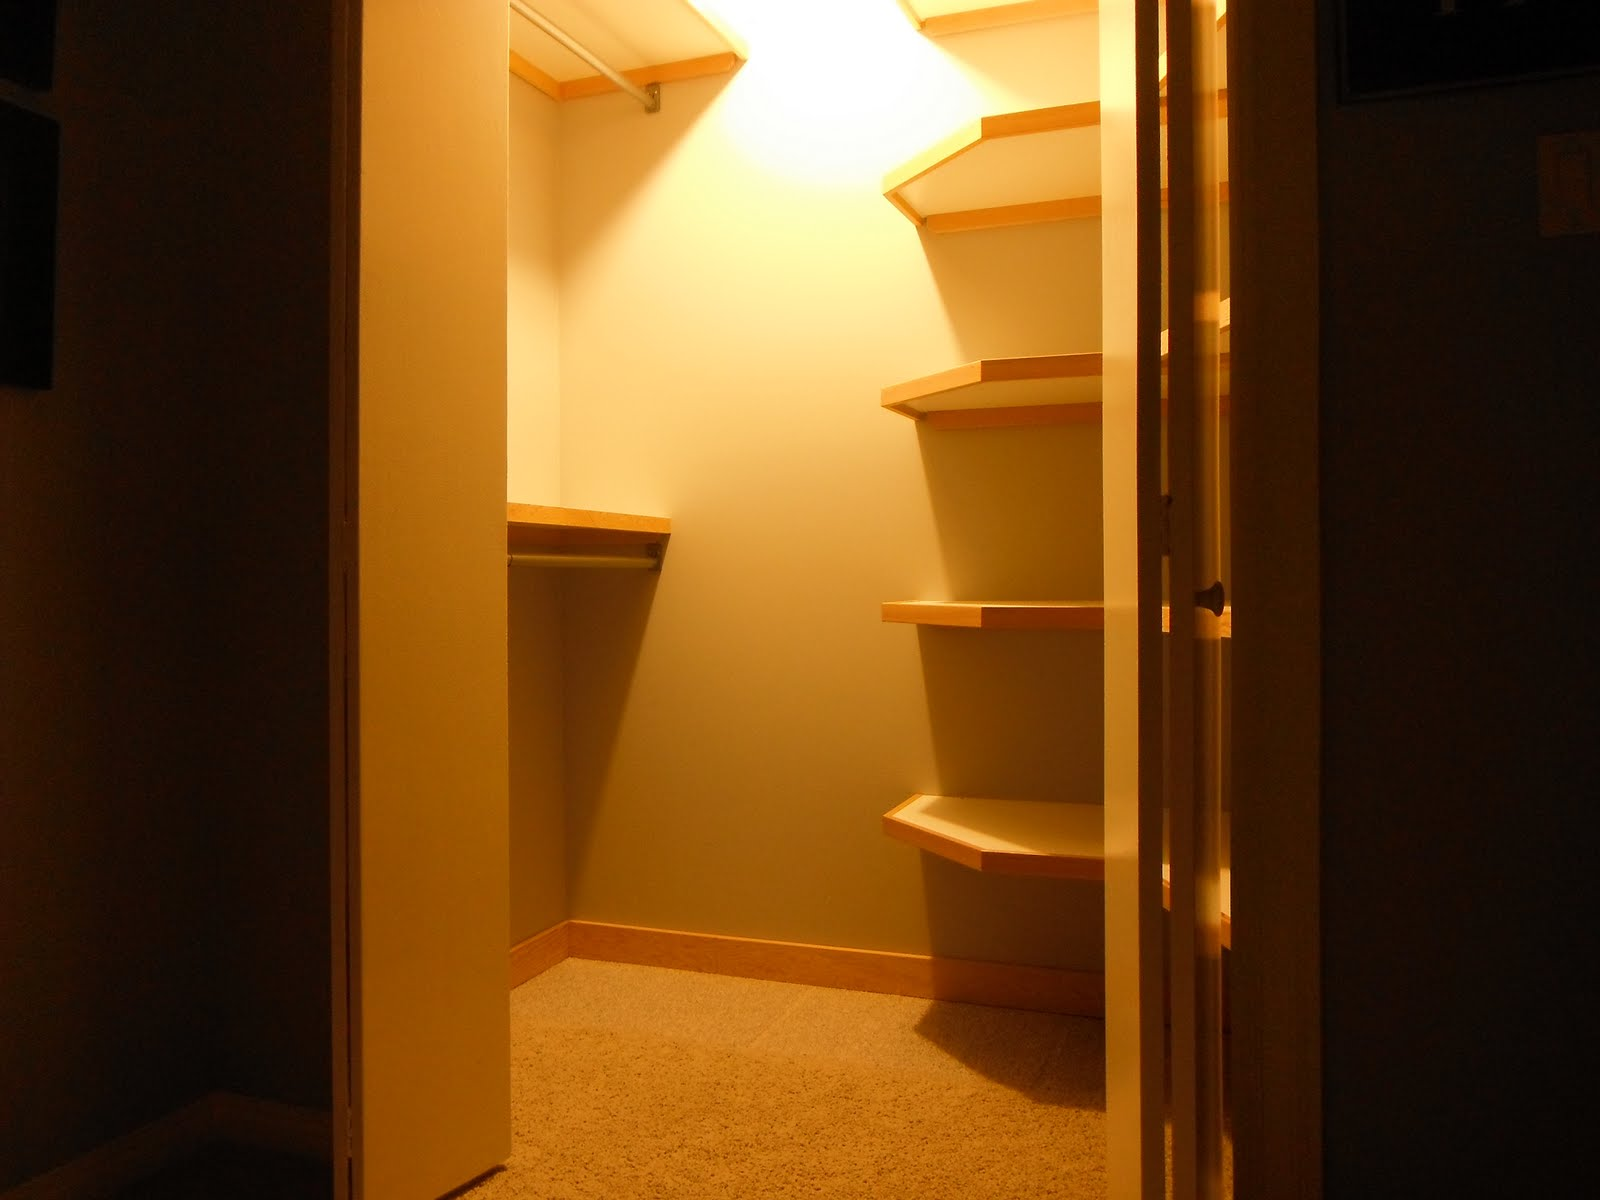 Of Course, When We Invade The Hall Closet, The Items That Were Stored There  Need A Home In The New Closet. We Packed In Some Nice, Open Shelving On The  ...